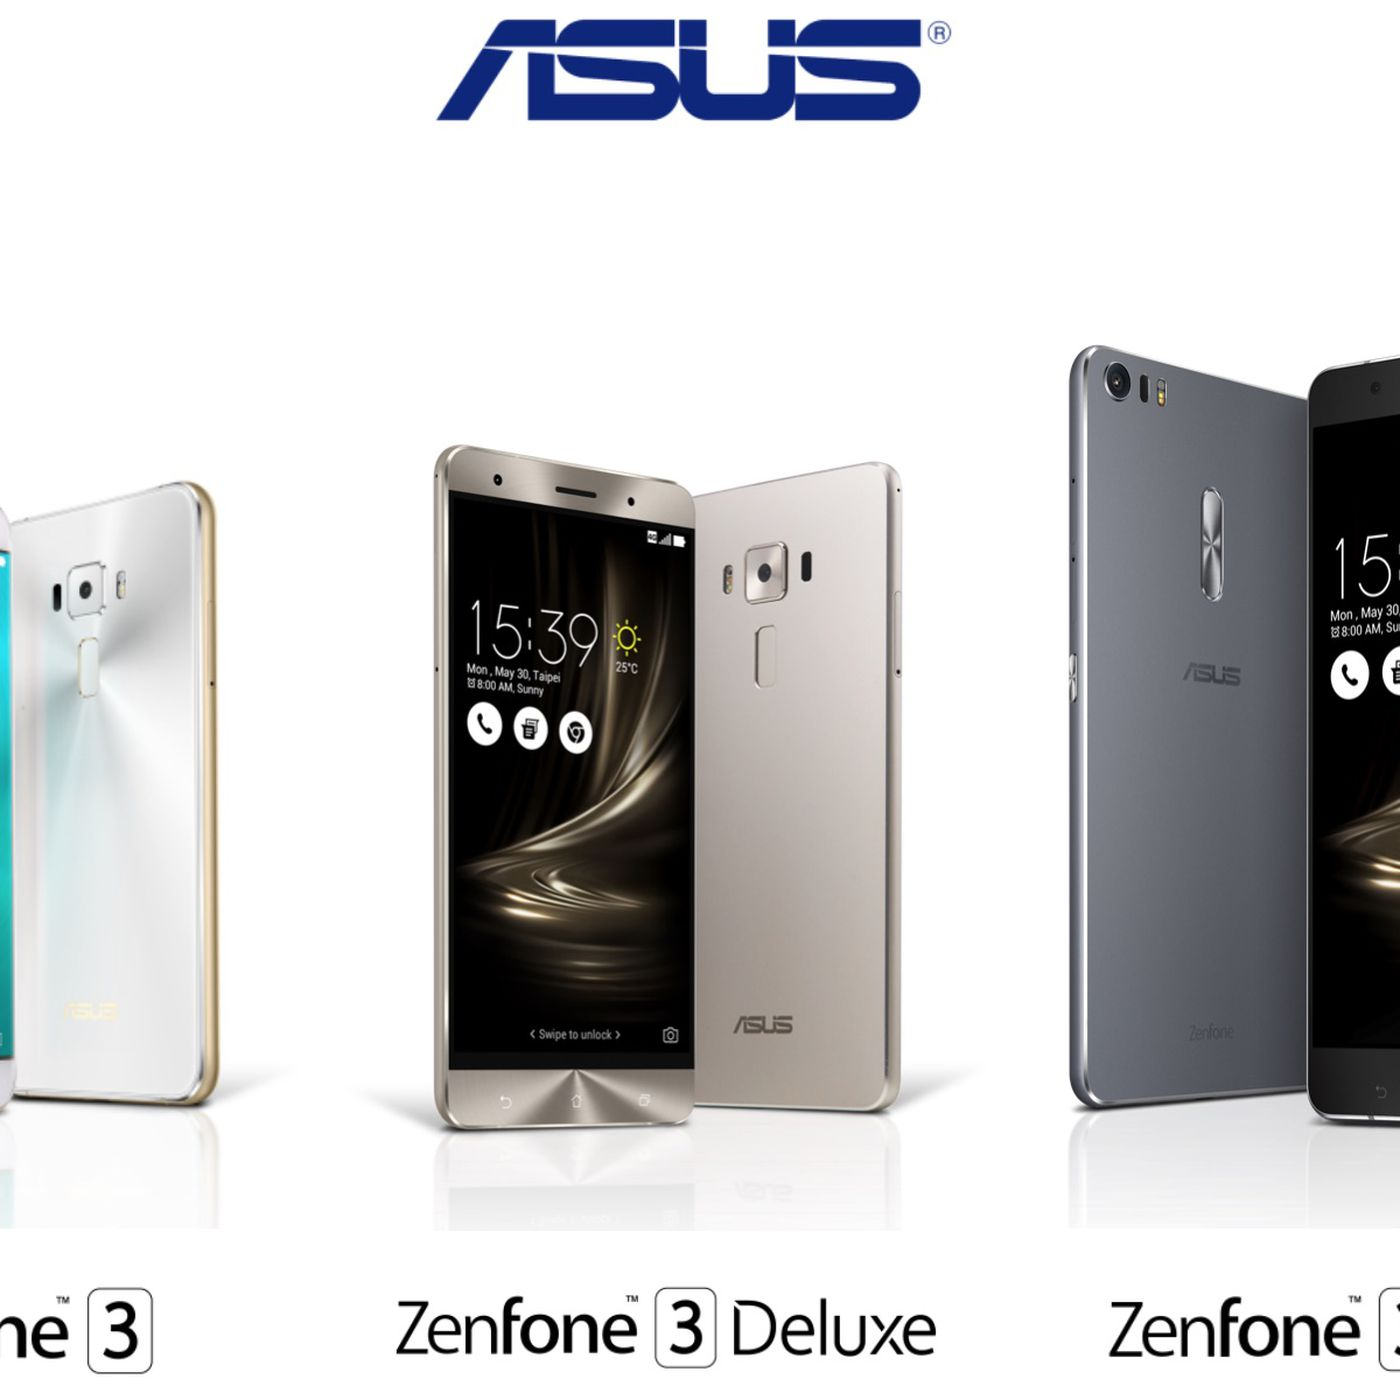 Asus announces Zenfone 3 alongside premium Deluxe and giant Ultra models The Verge